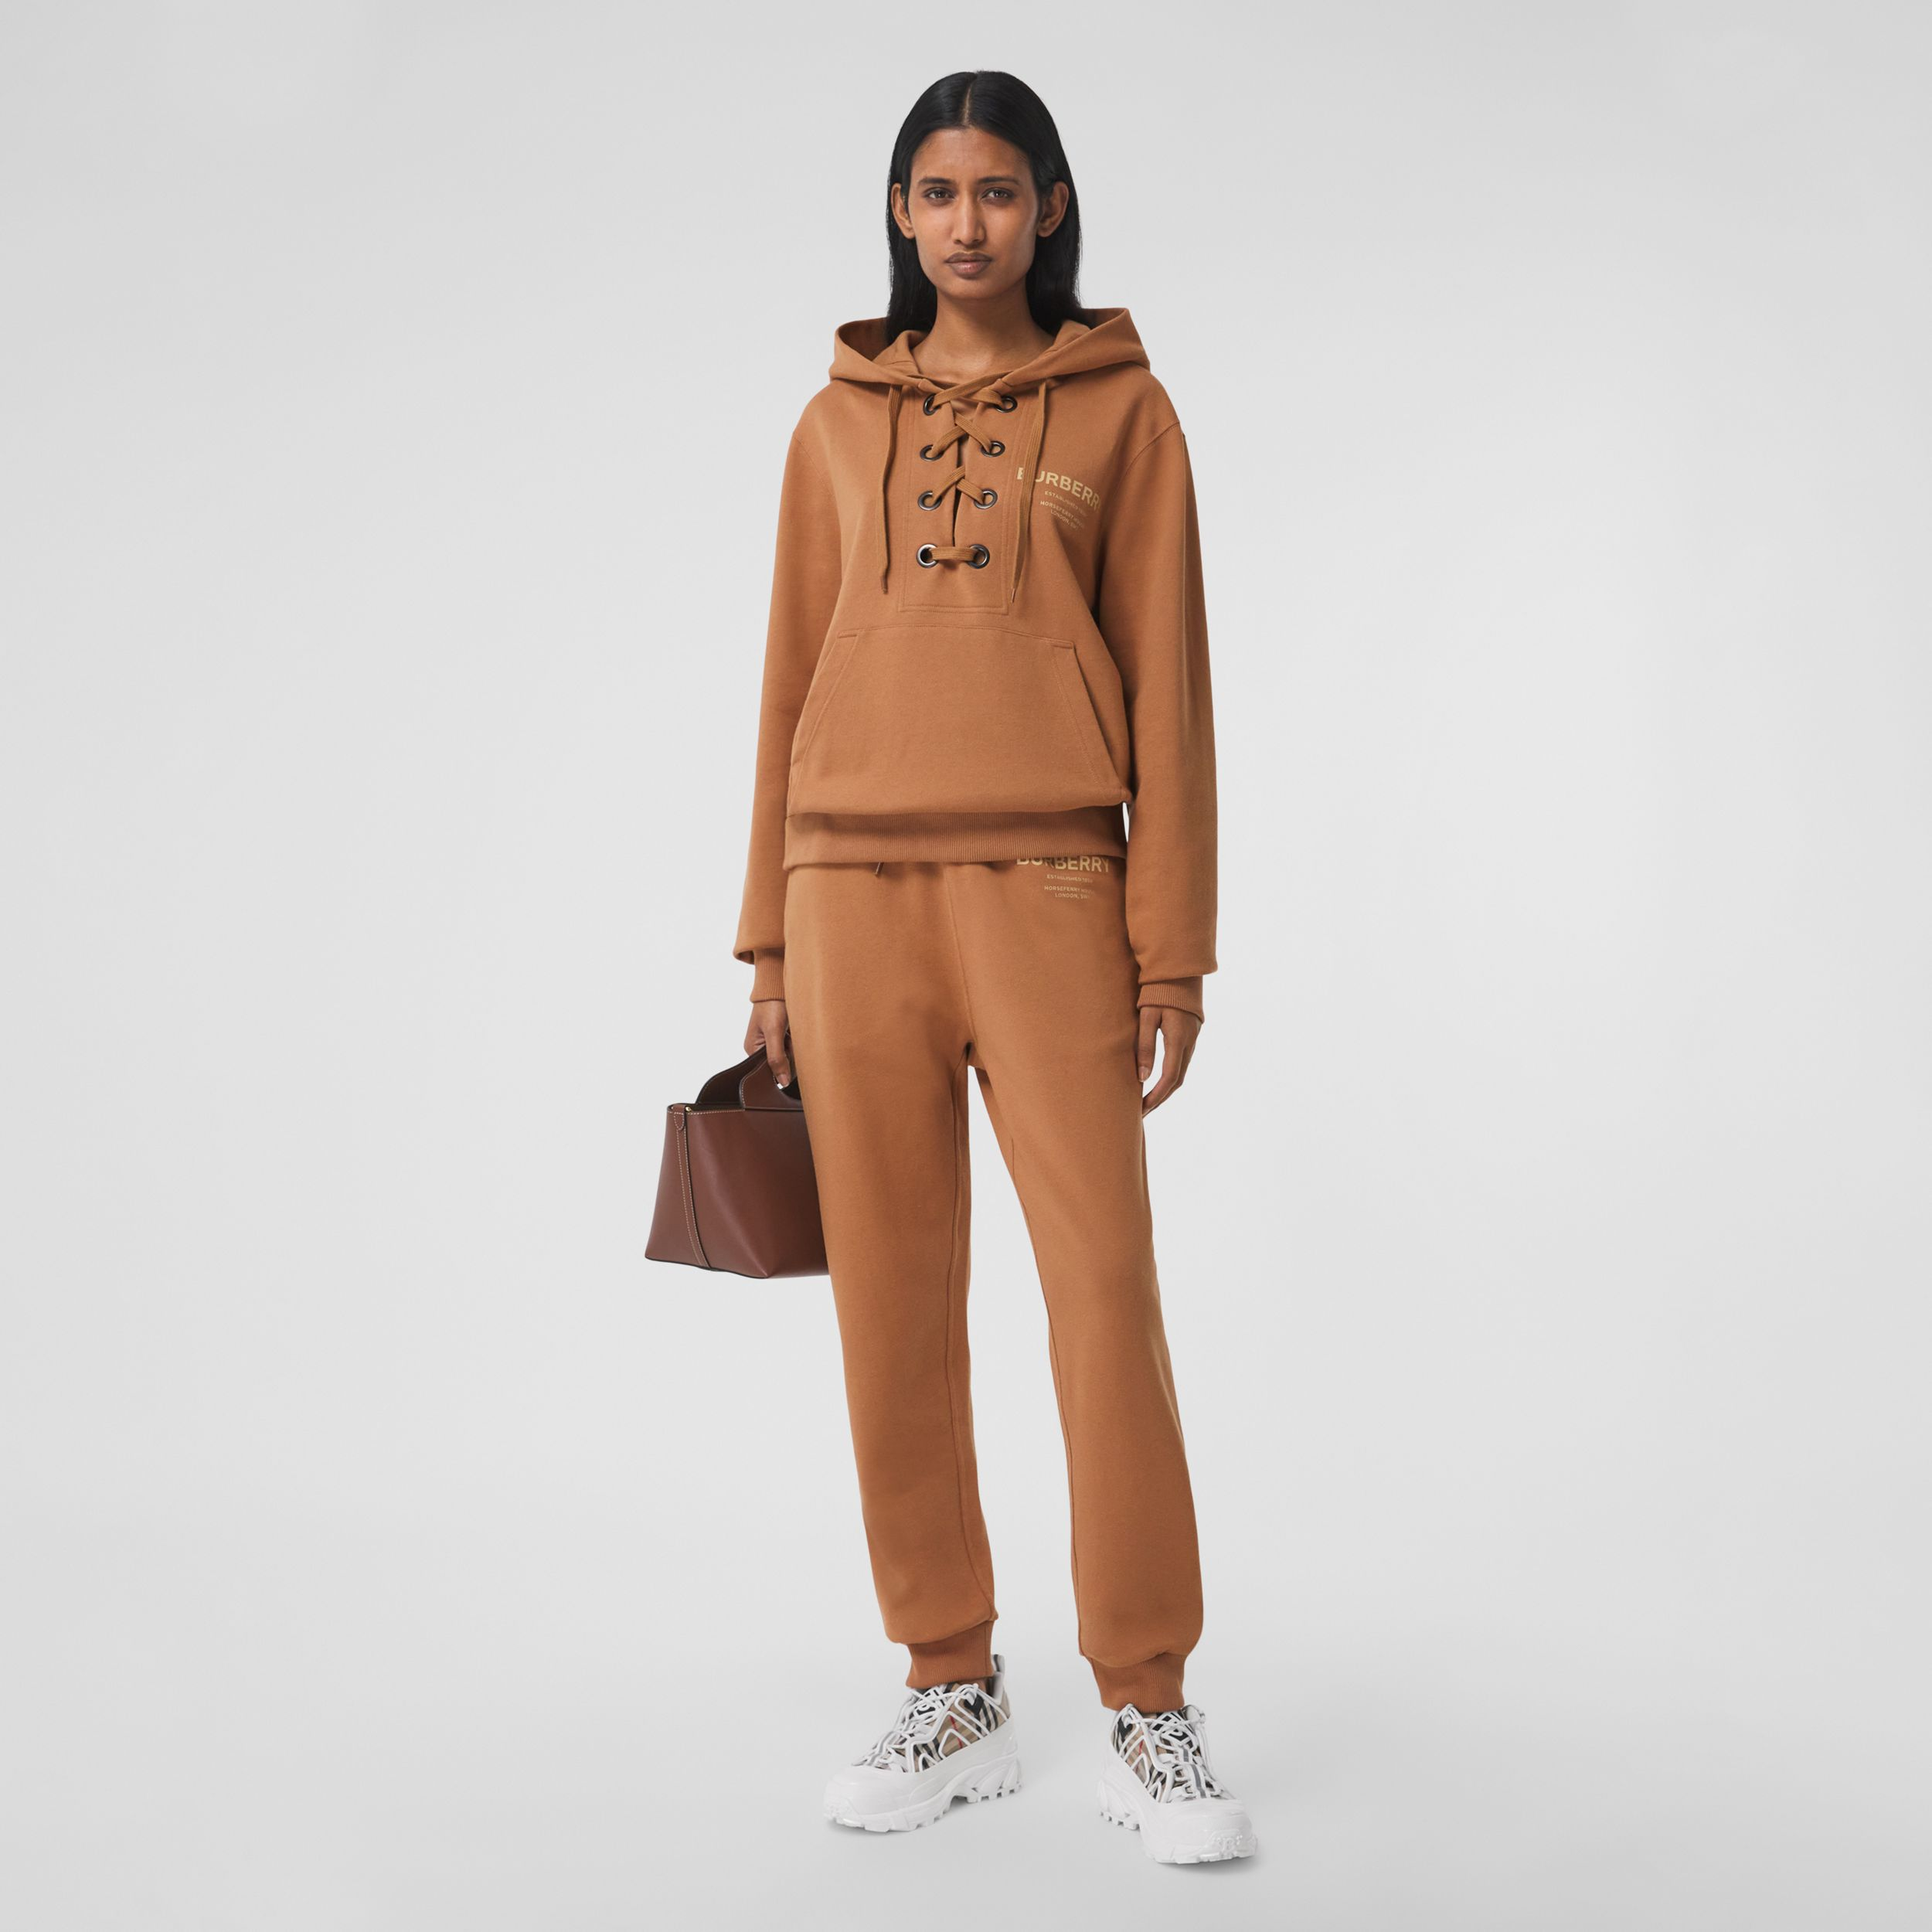 Horseferry Print Cotton Jogging Pants in Camel - Women | Burberry - 1